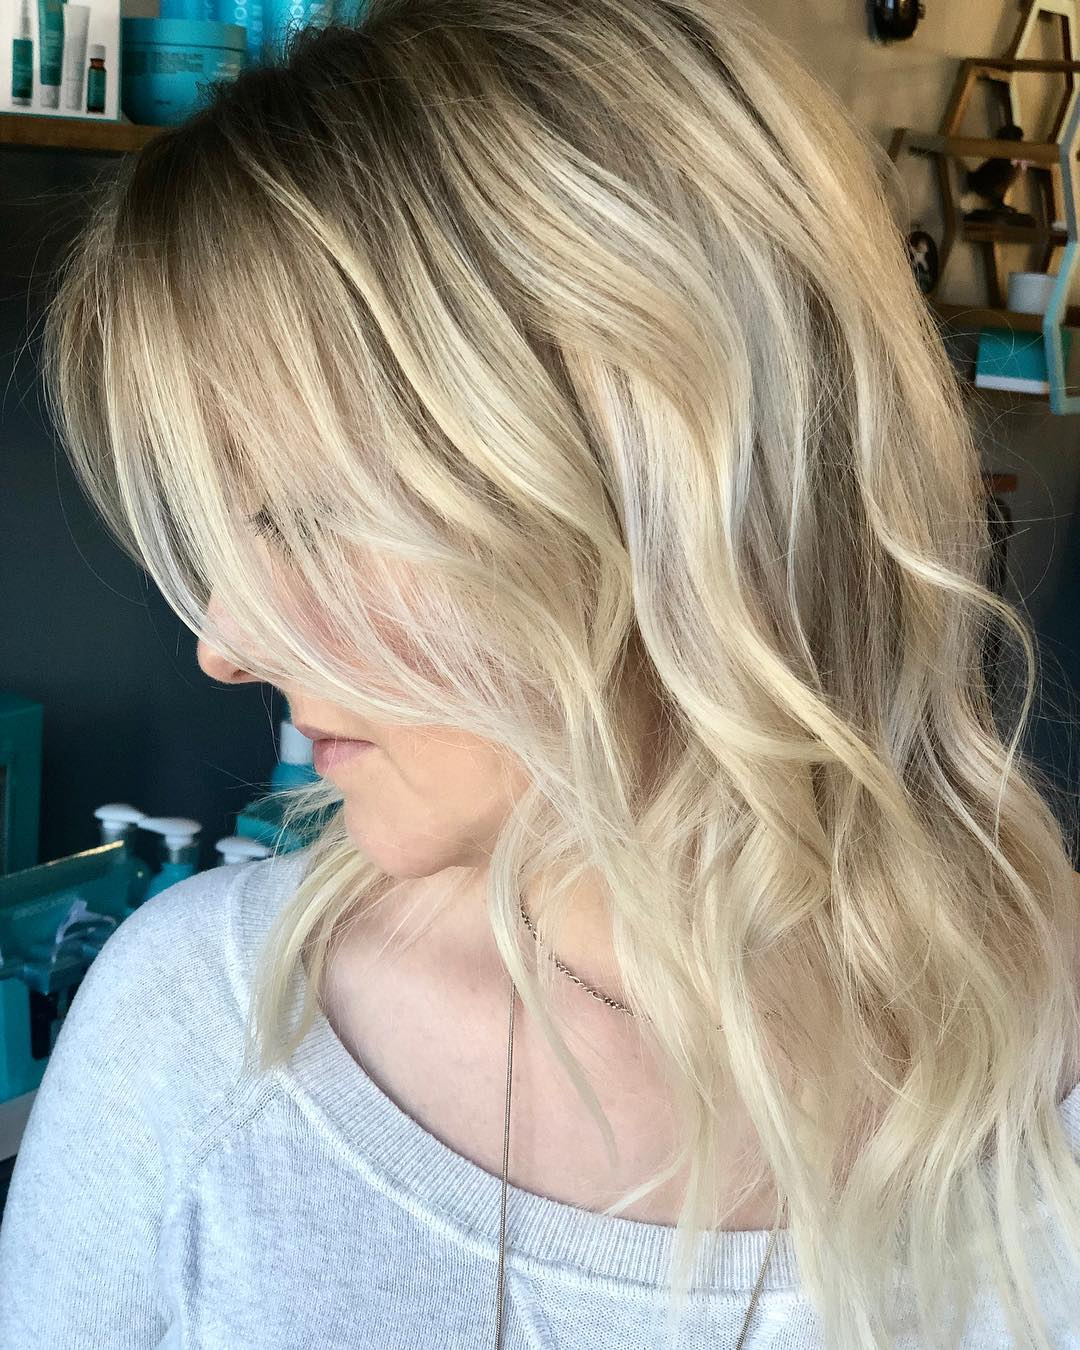 balayage ombre hairstyles 11 9 New Blonde Balayage Hairstyles You'll Love!